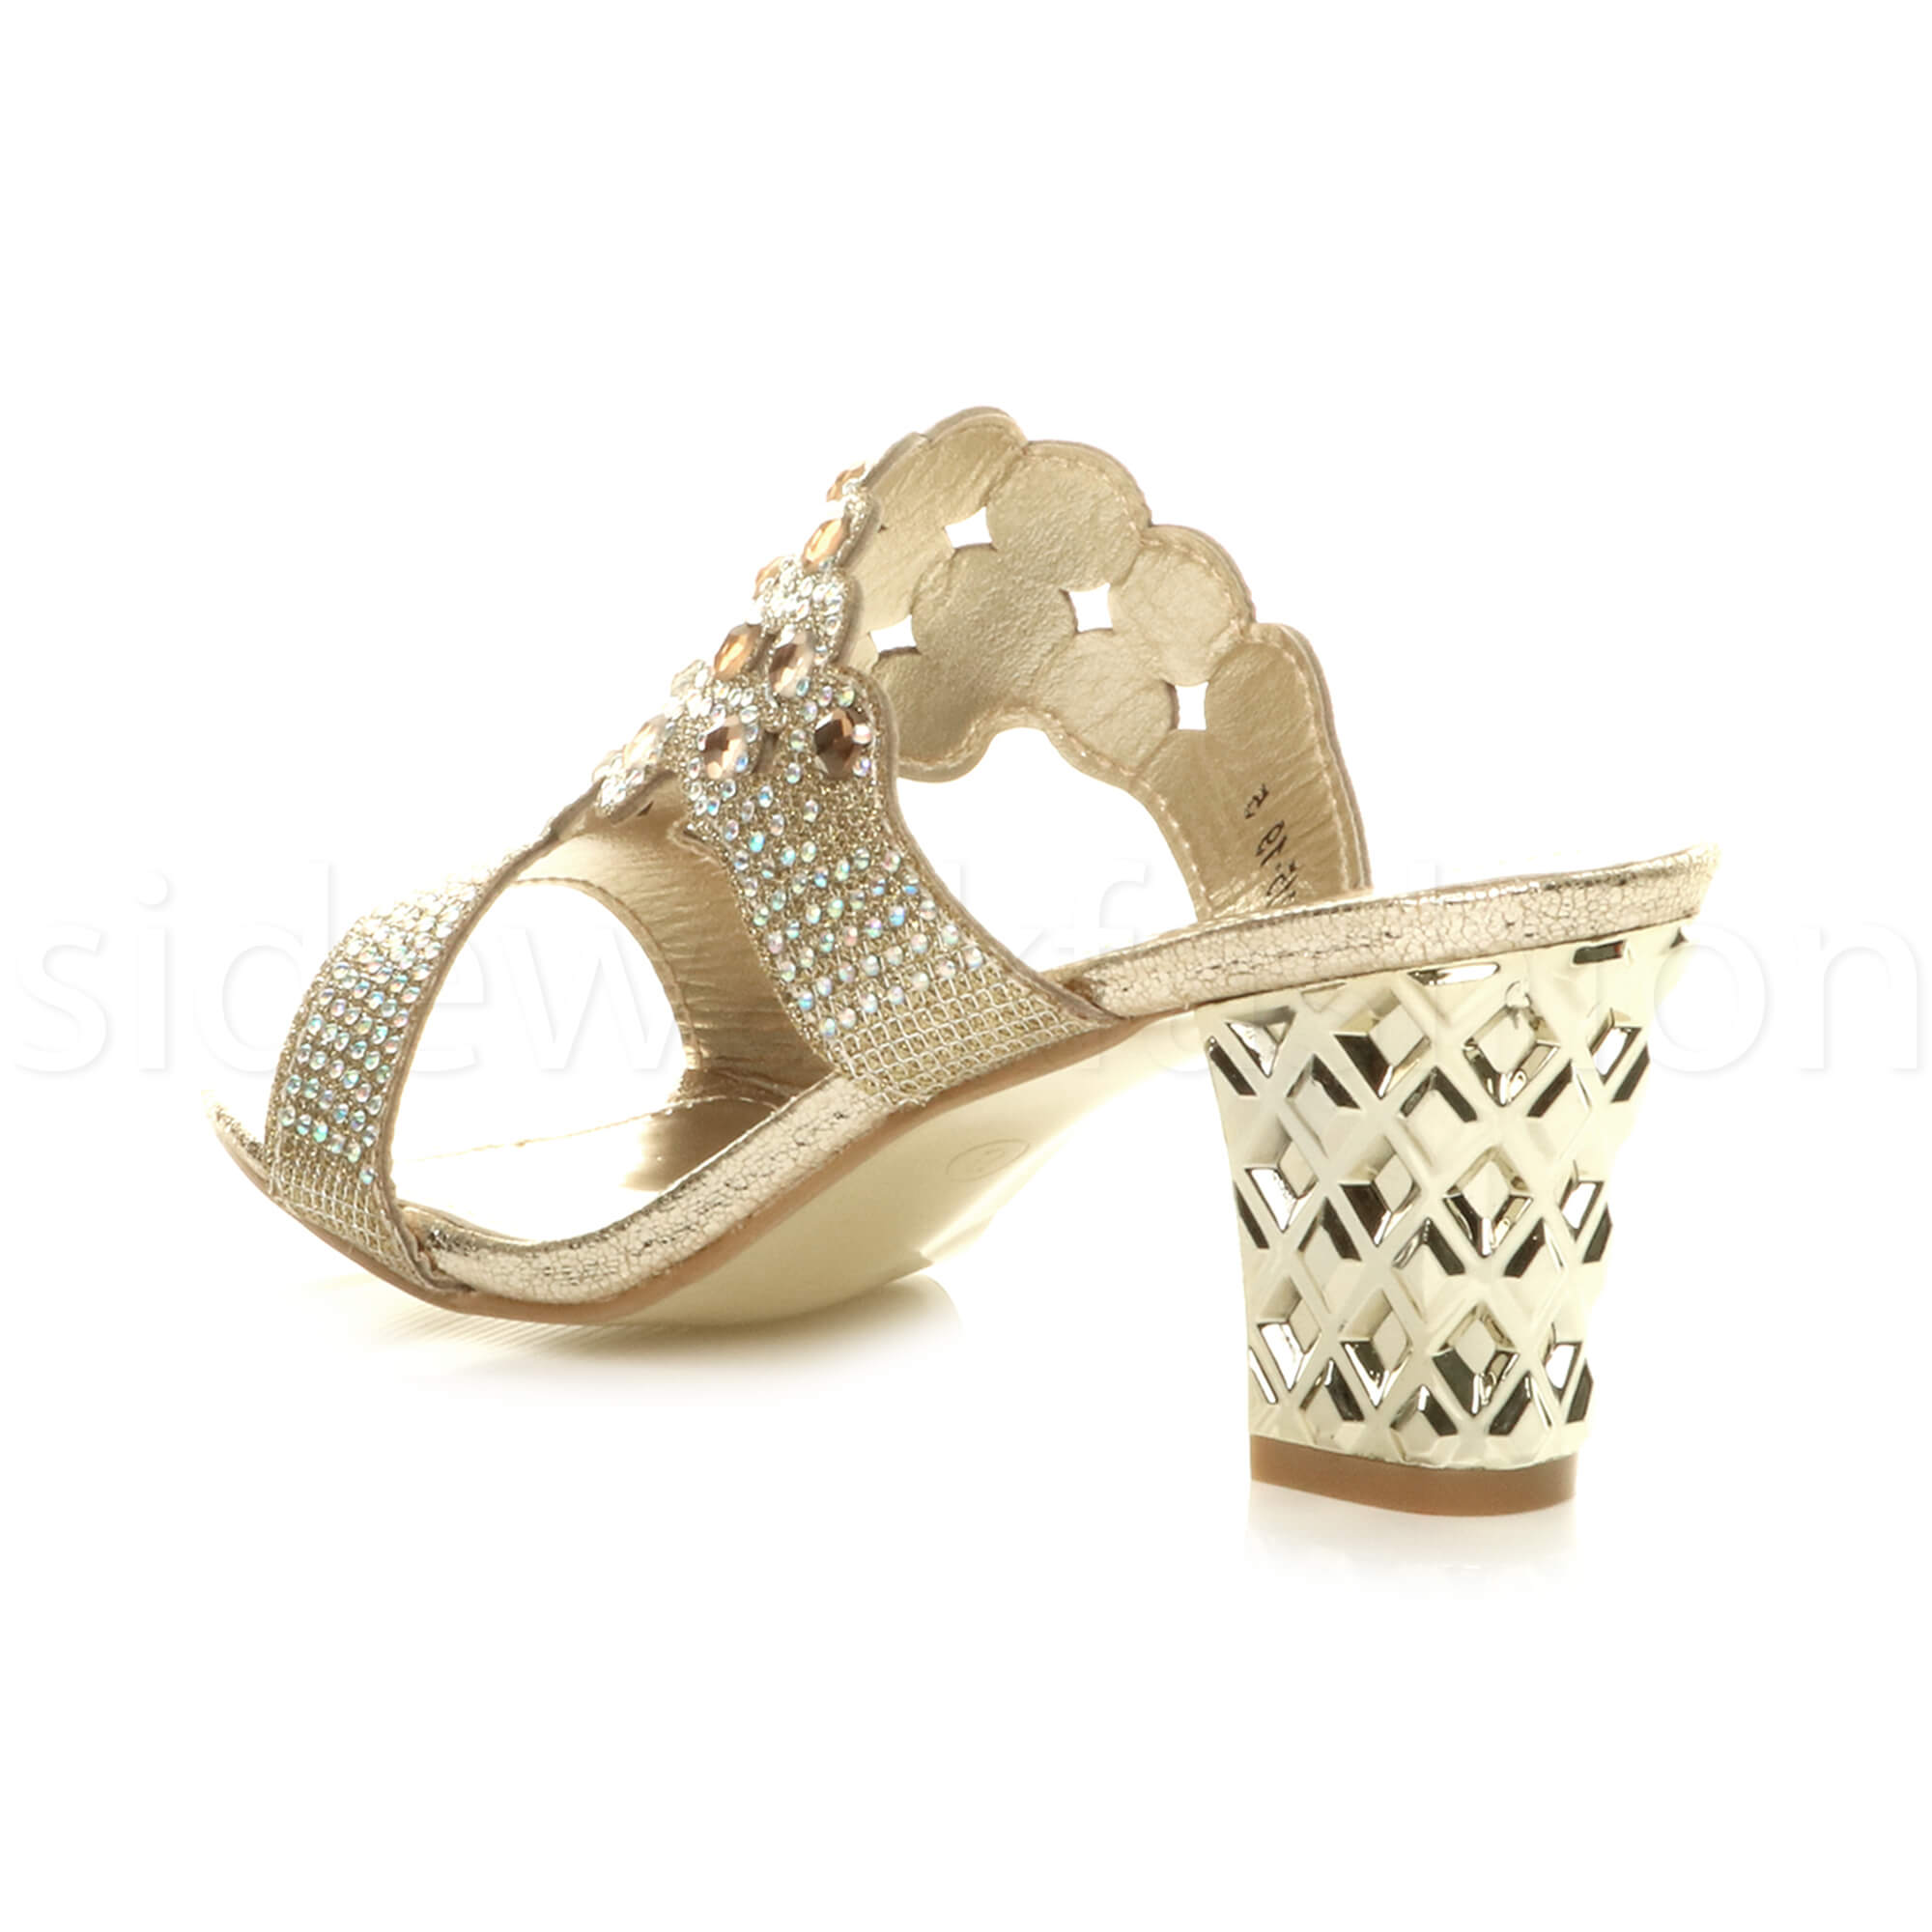 Womens-ladies-mid-heel-party-diamante-slip-on-strappy-mules-sandals-shoes-size thumbnail 10